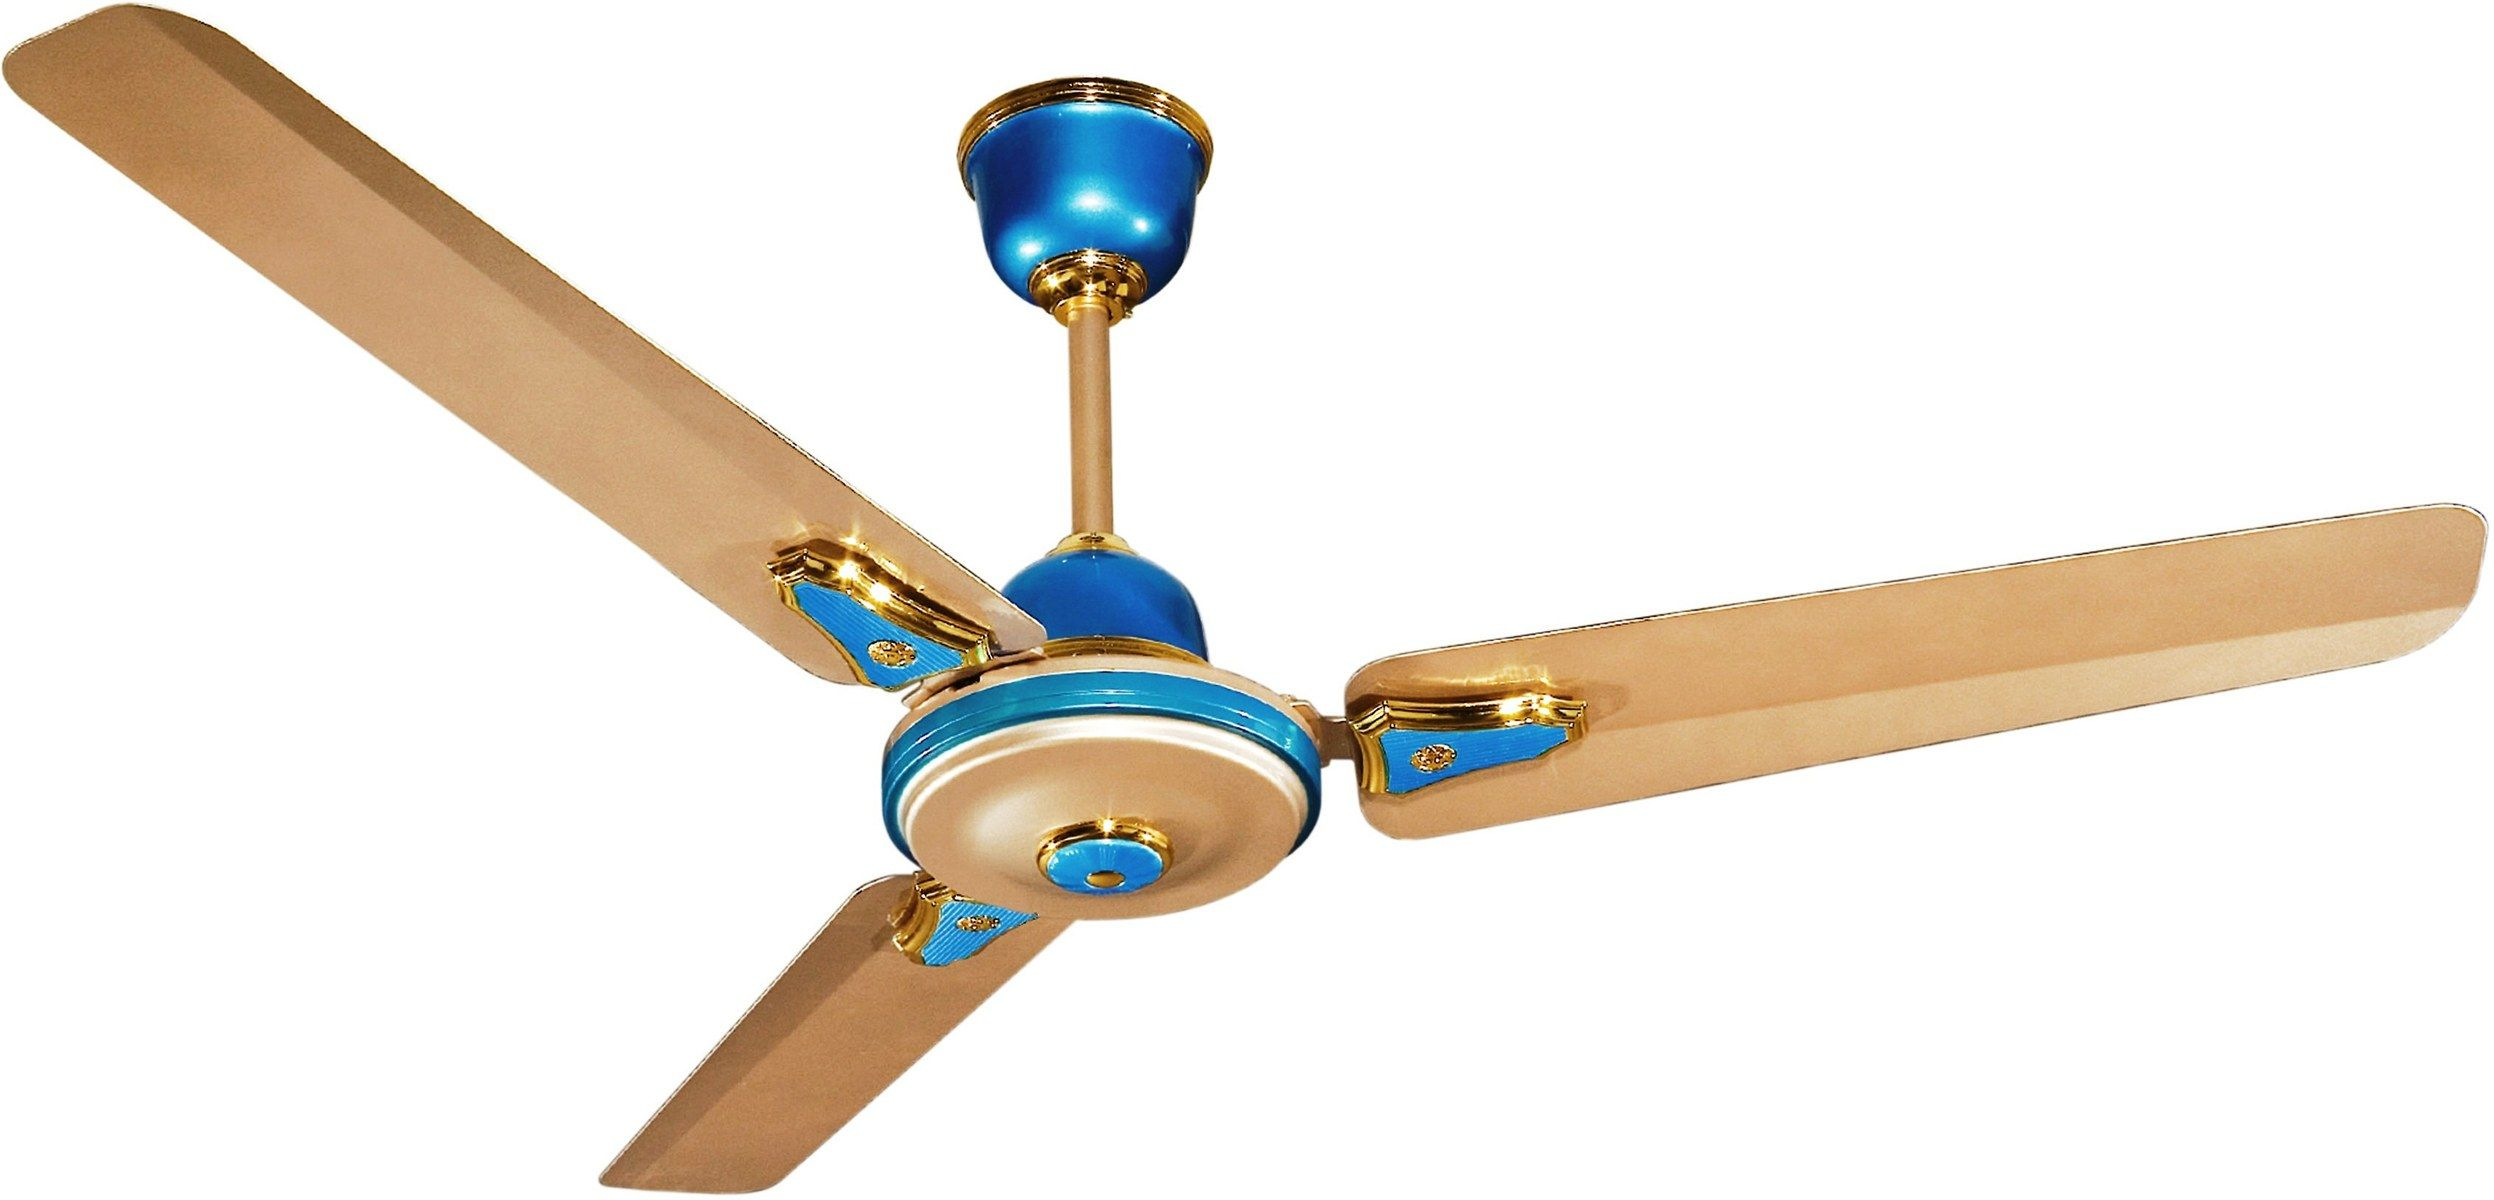 Best ceiling fan brand in india this year gadgets shiksha pinterest best ceiling fan brand in india this year aloadofball Gallery